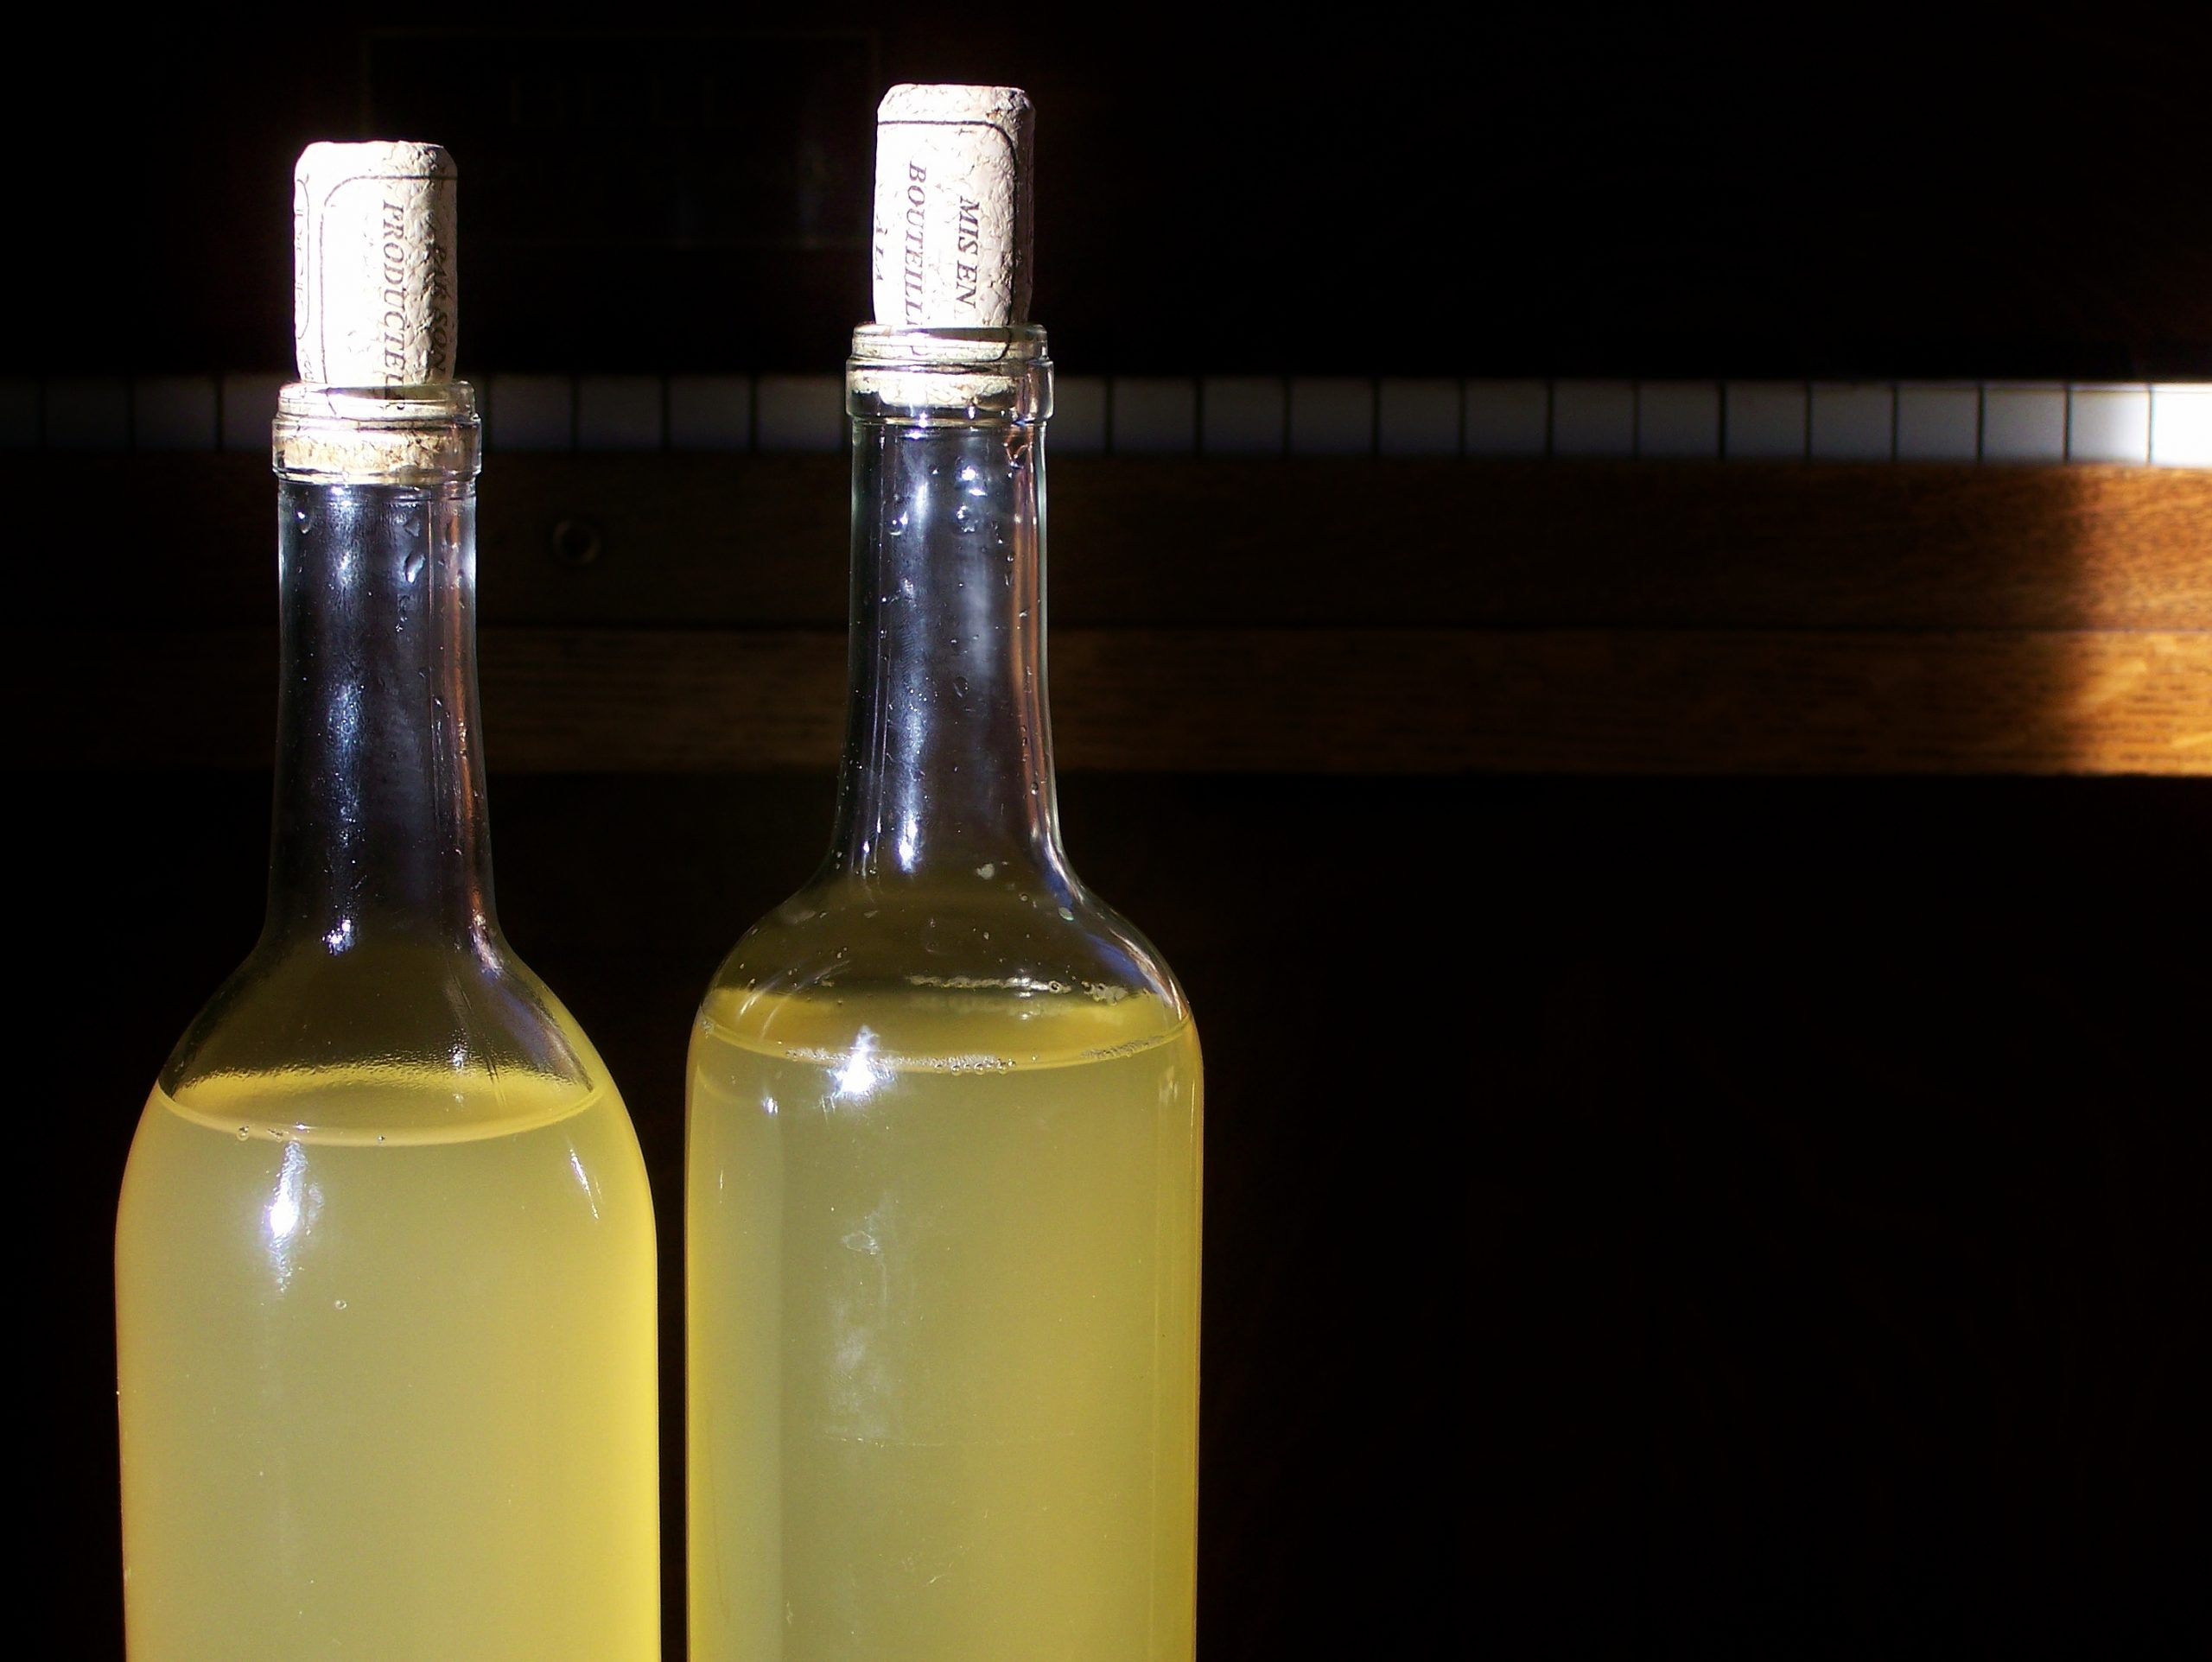 Raw grape vinegar, bottled and ready for use